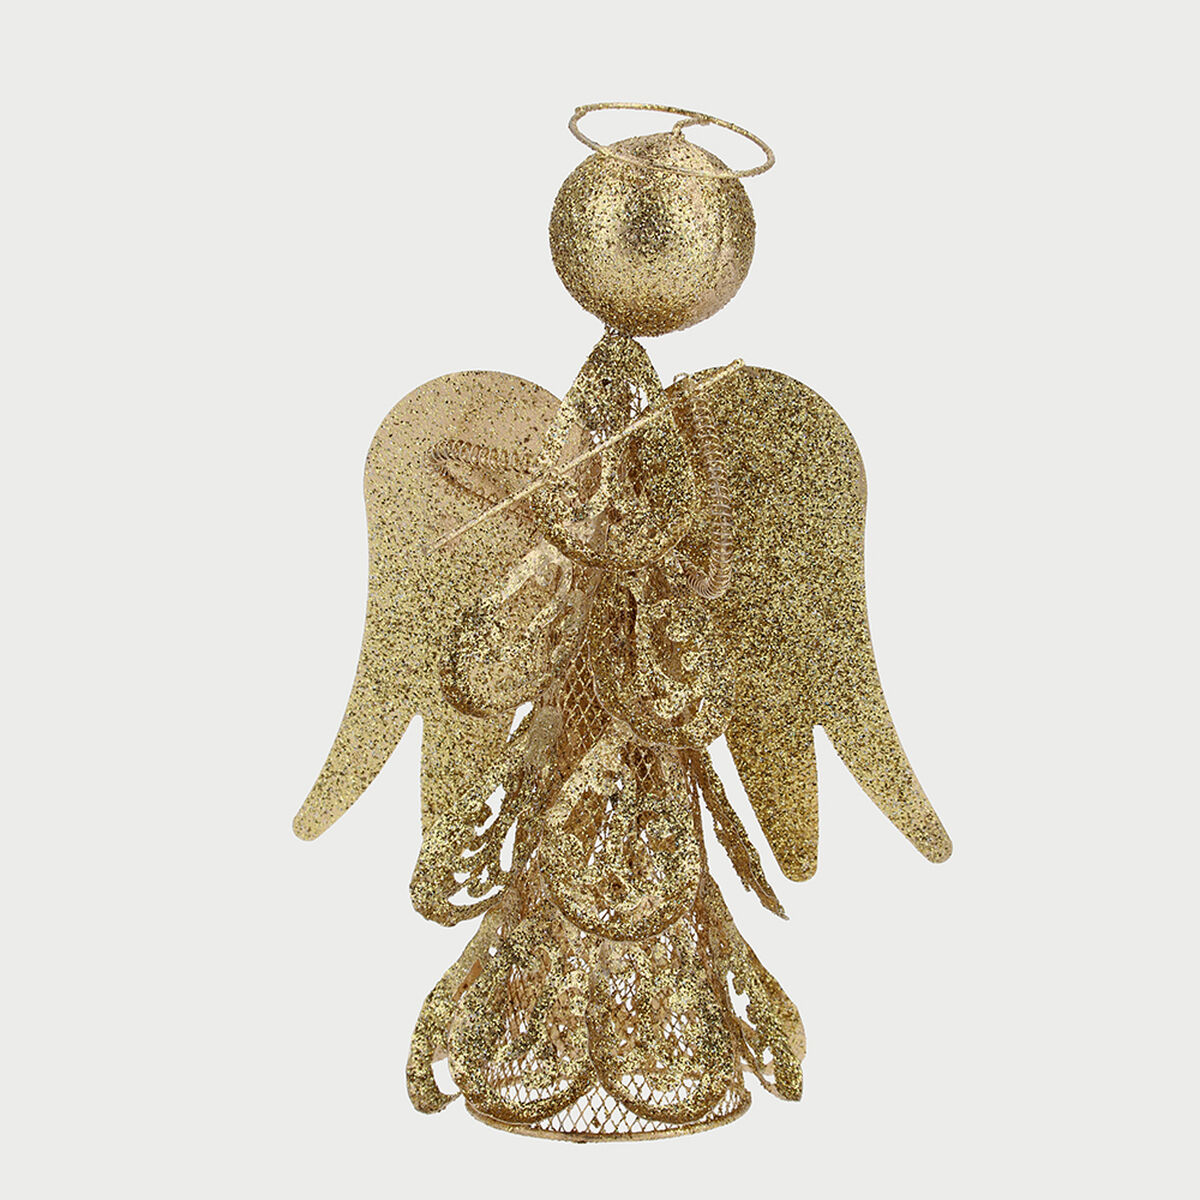 Angel Decorativo Dorado 25